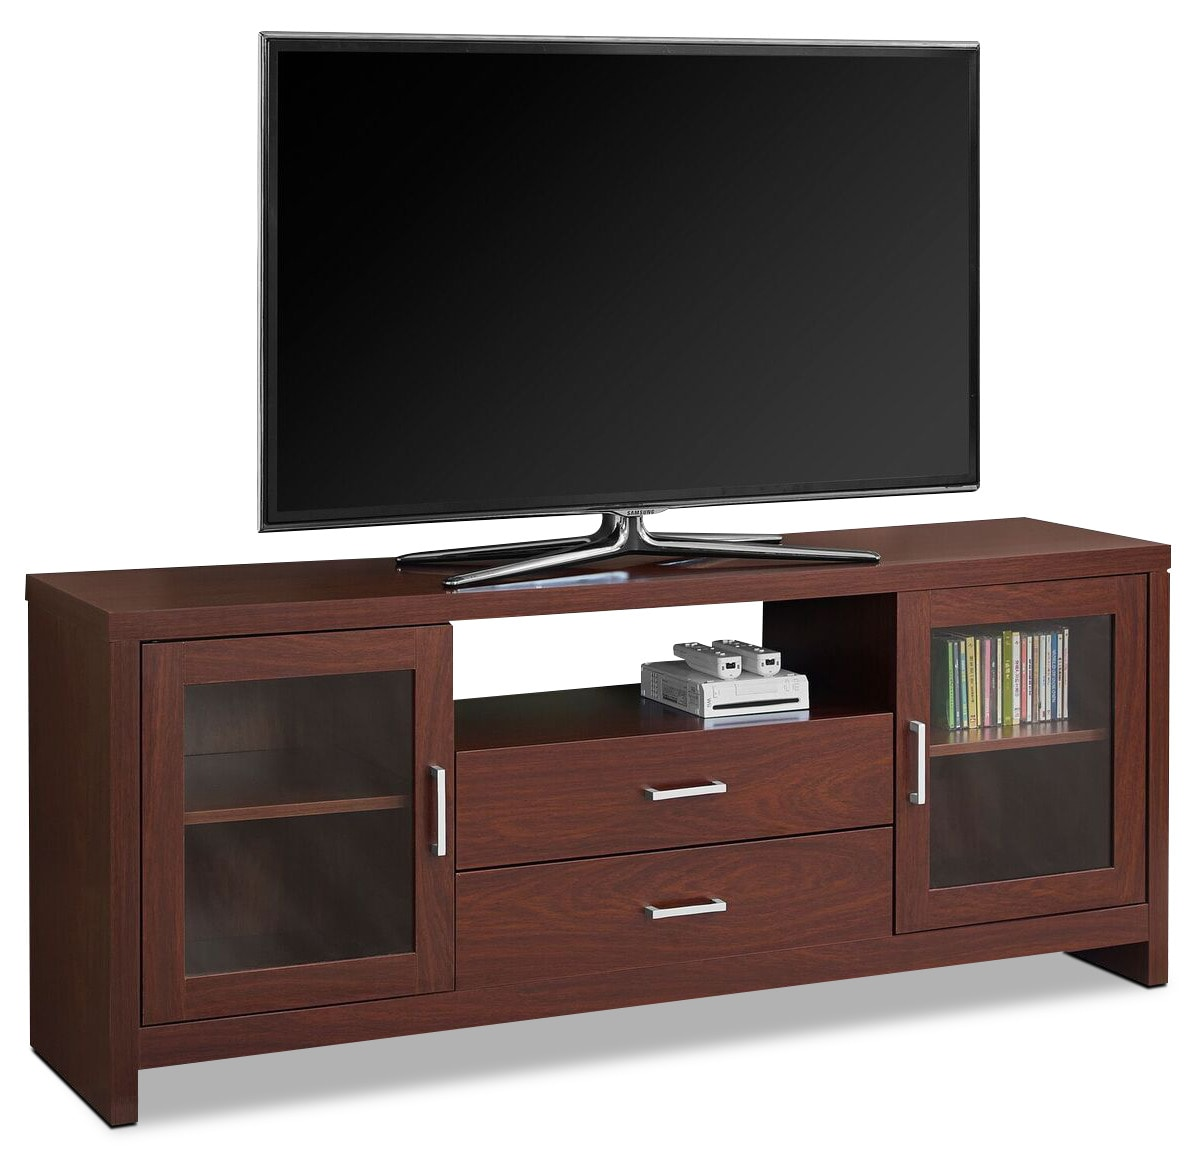 Tucker TV Stand - Warm Cherry